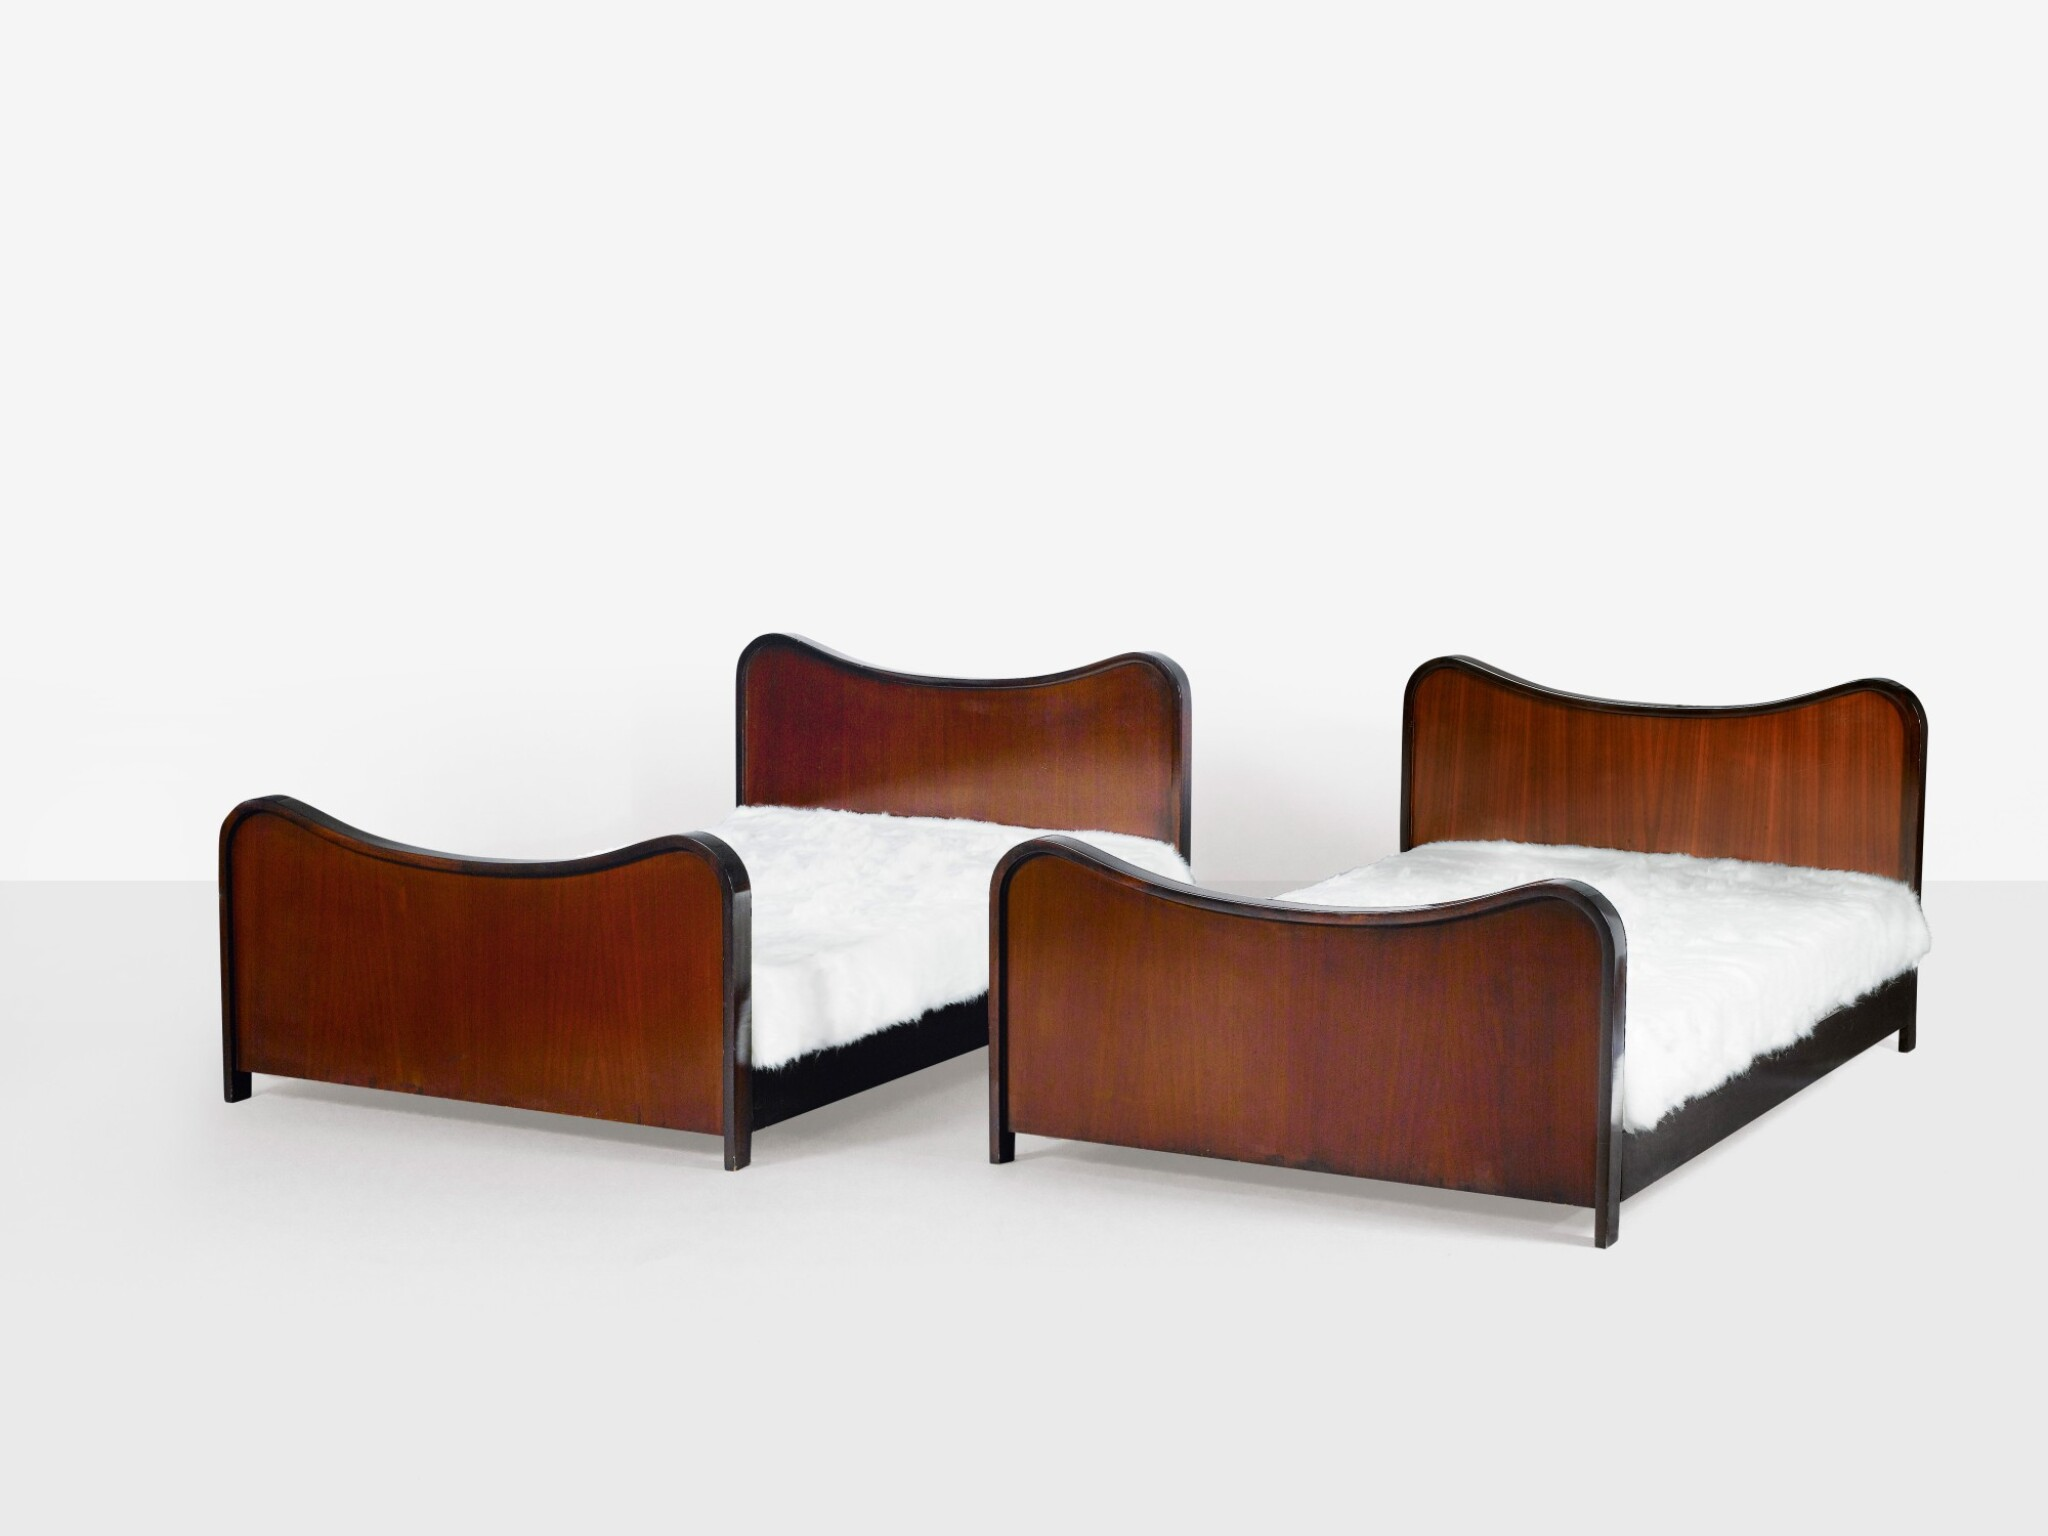 View 1 of Lot 182. JEAN ROYÈRE | TWO BEDS, CIRCA 1950-1960 [DEUX LITS, VERS 1950-1960].